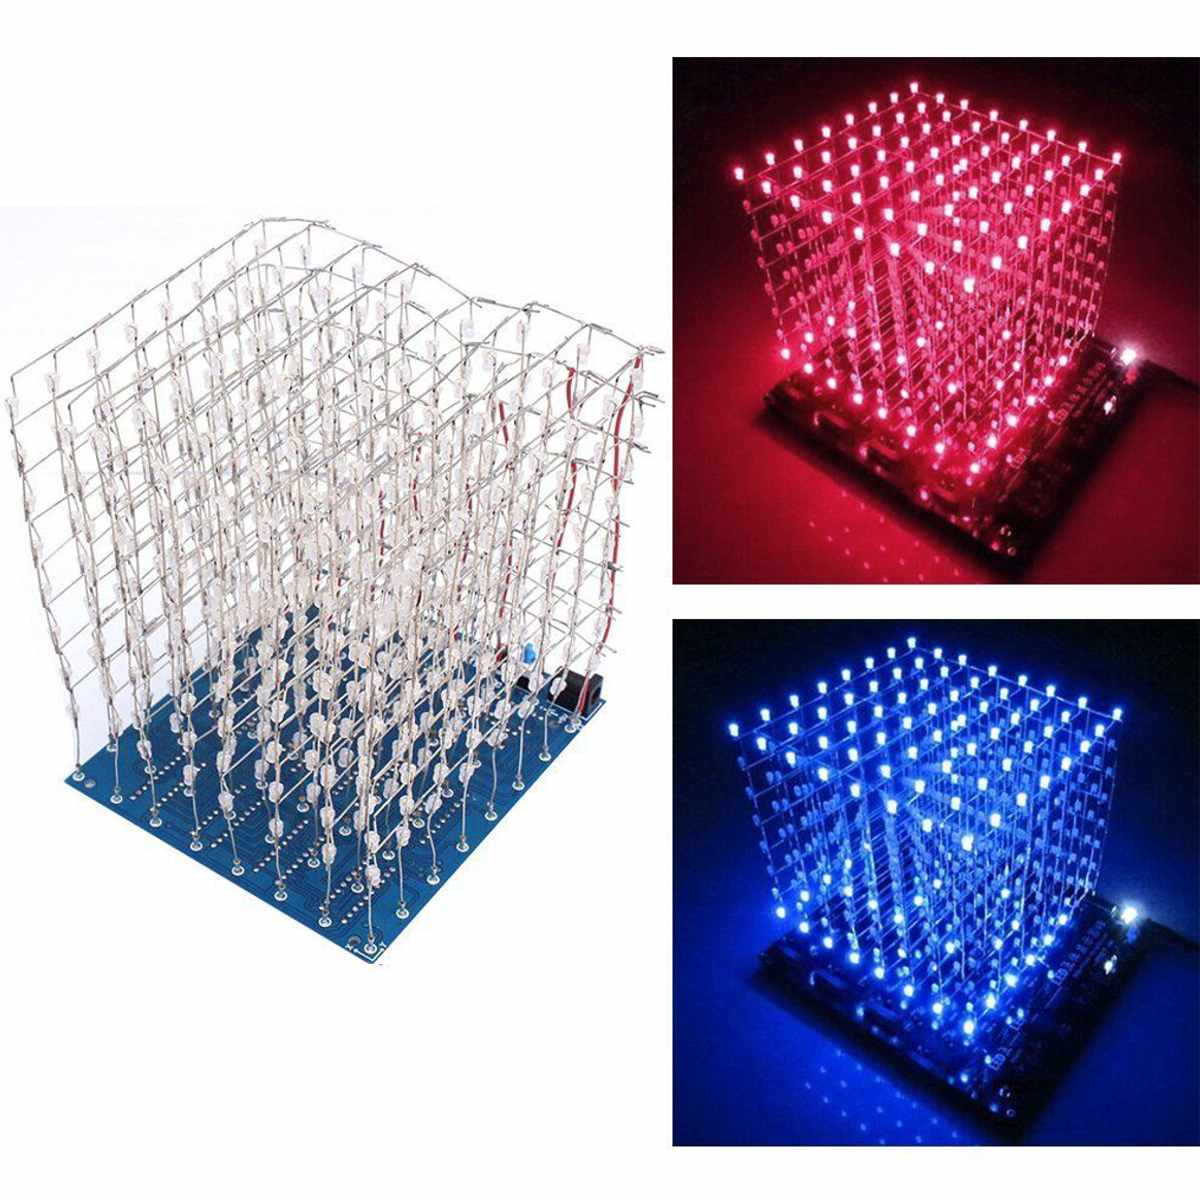 Dac Leory 8x8x8 512 Led Diy 3d Led Light Cube Kit Wi-fi Connected App Control Music Spectrum Led Display Equipment Mp3 Dac Circuit